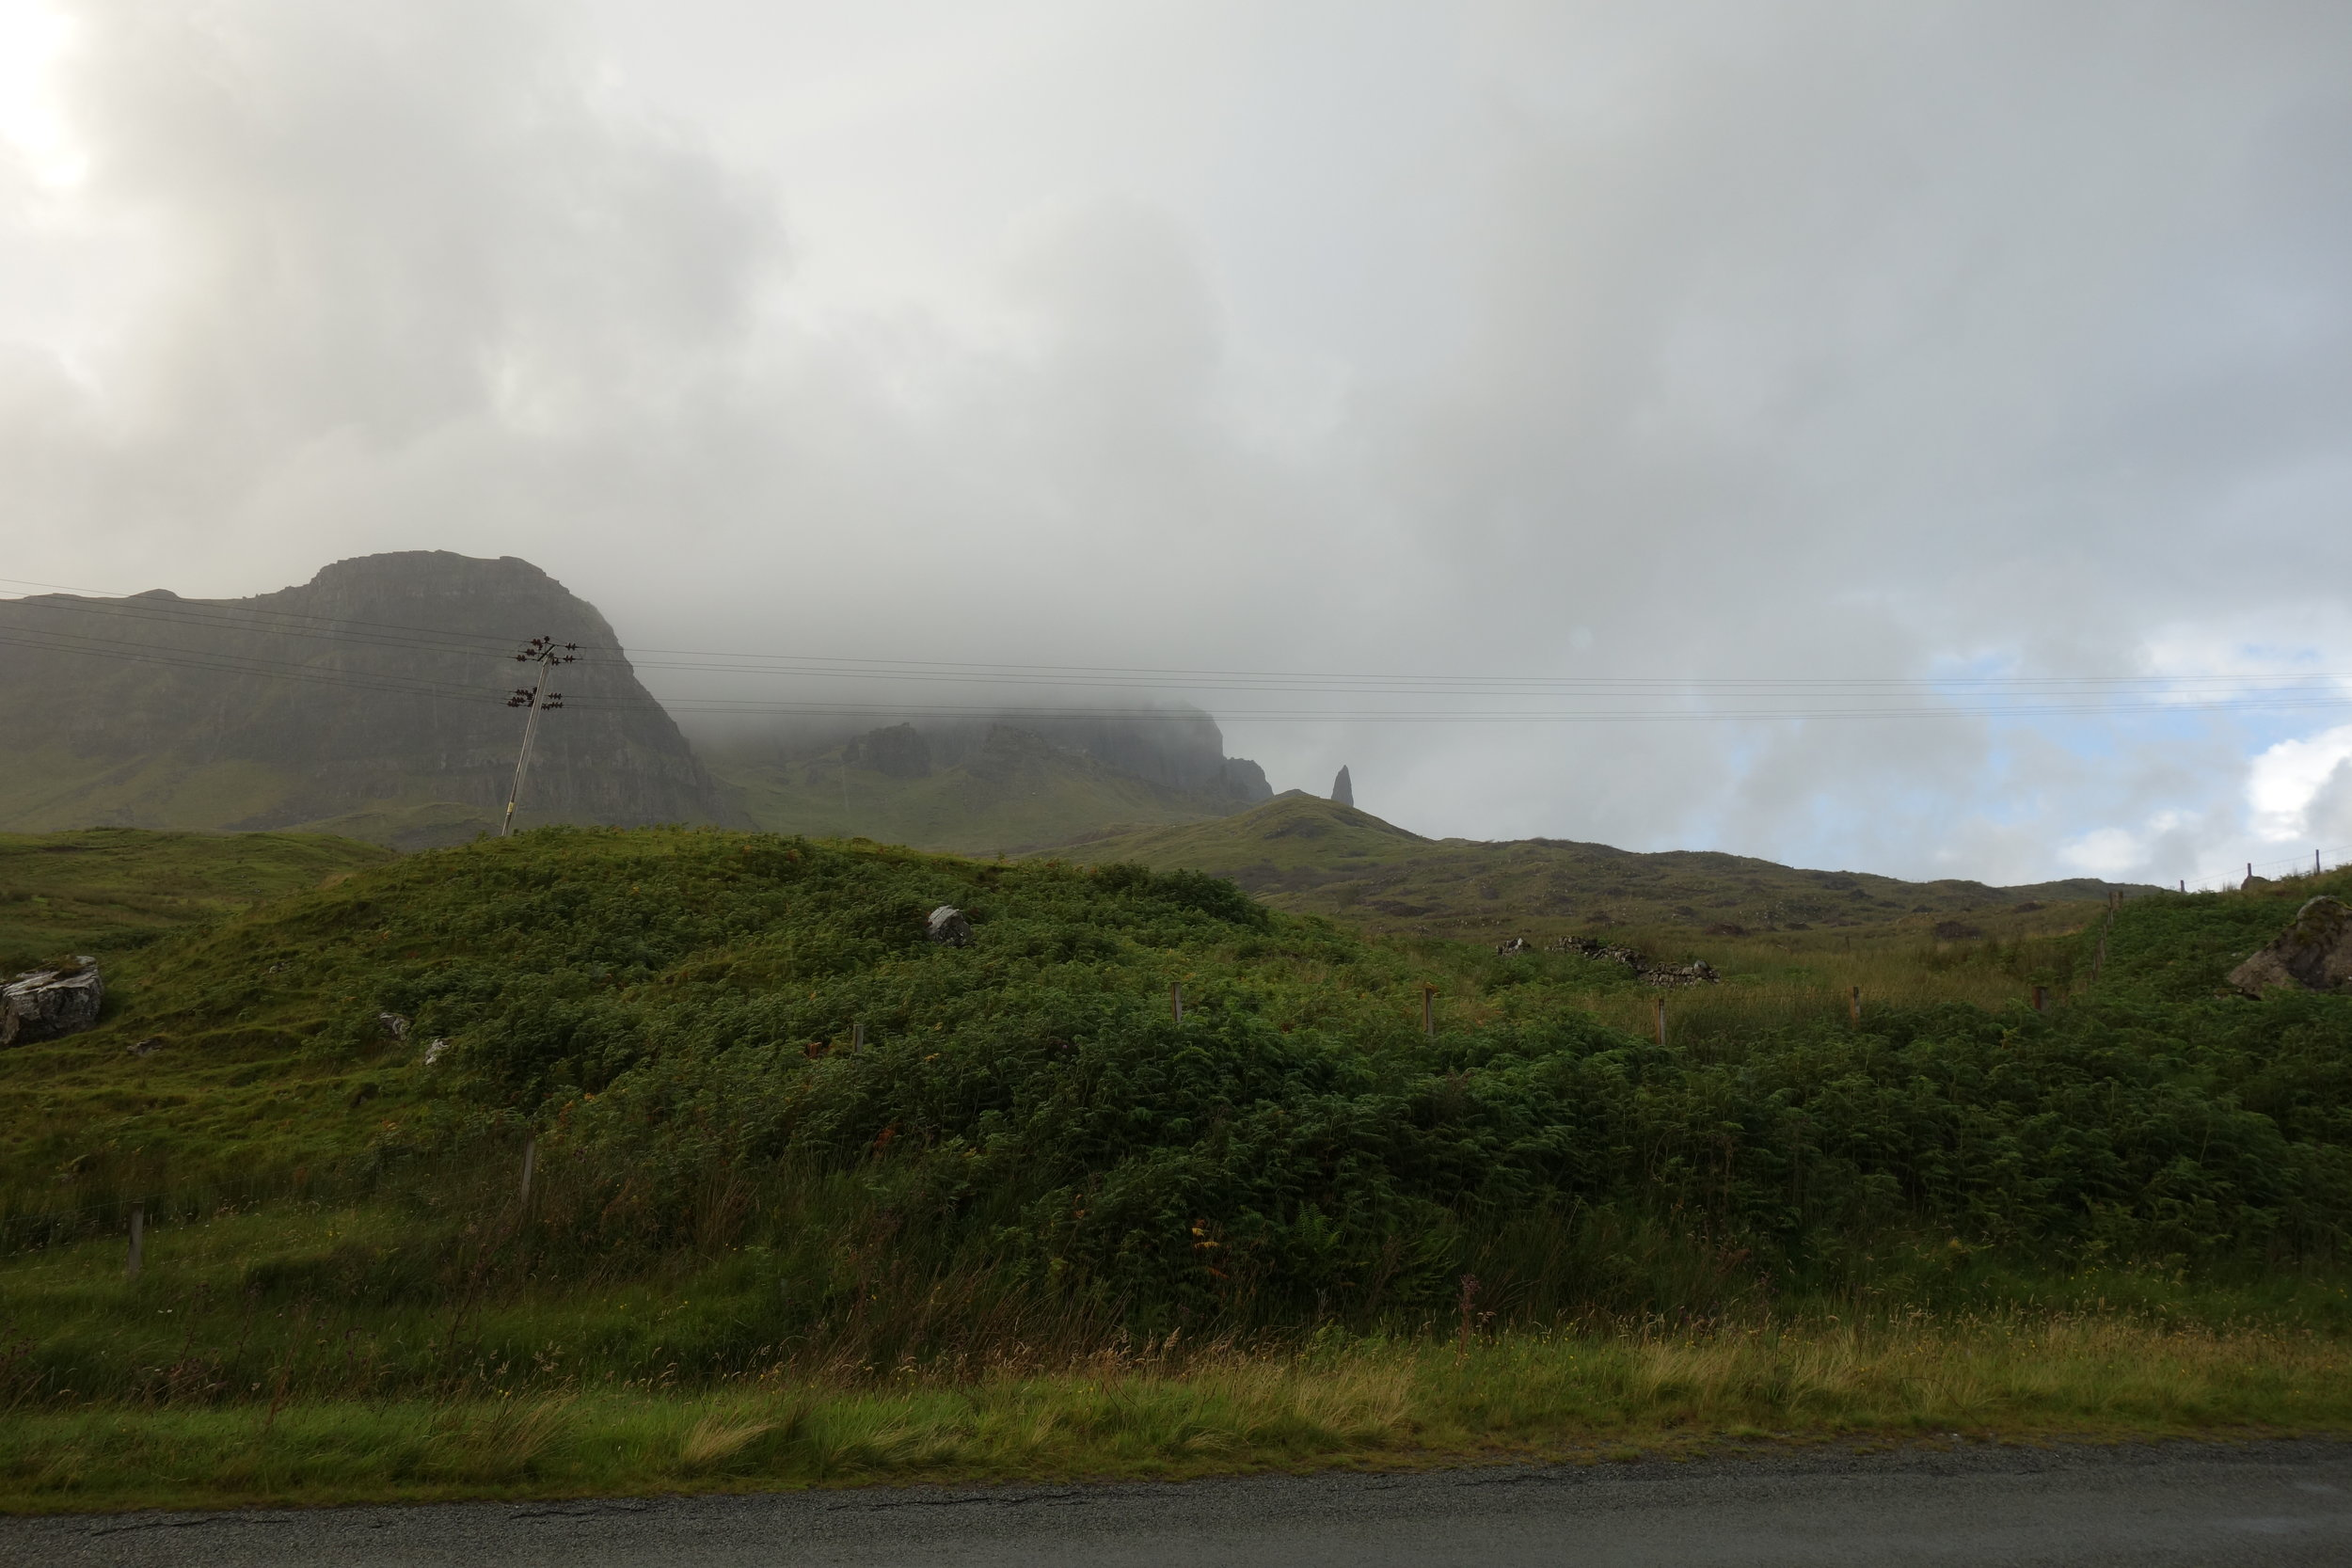 Behold: The Storr. It's the pointy rock thing in the distance. V. impressive, I know. Not picture: me, dying, taking this picture as proof that I made it before I passed out on the highway. Like a CHAMPION.